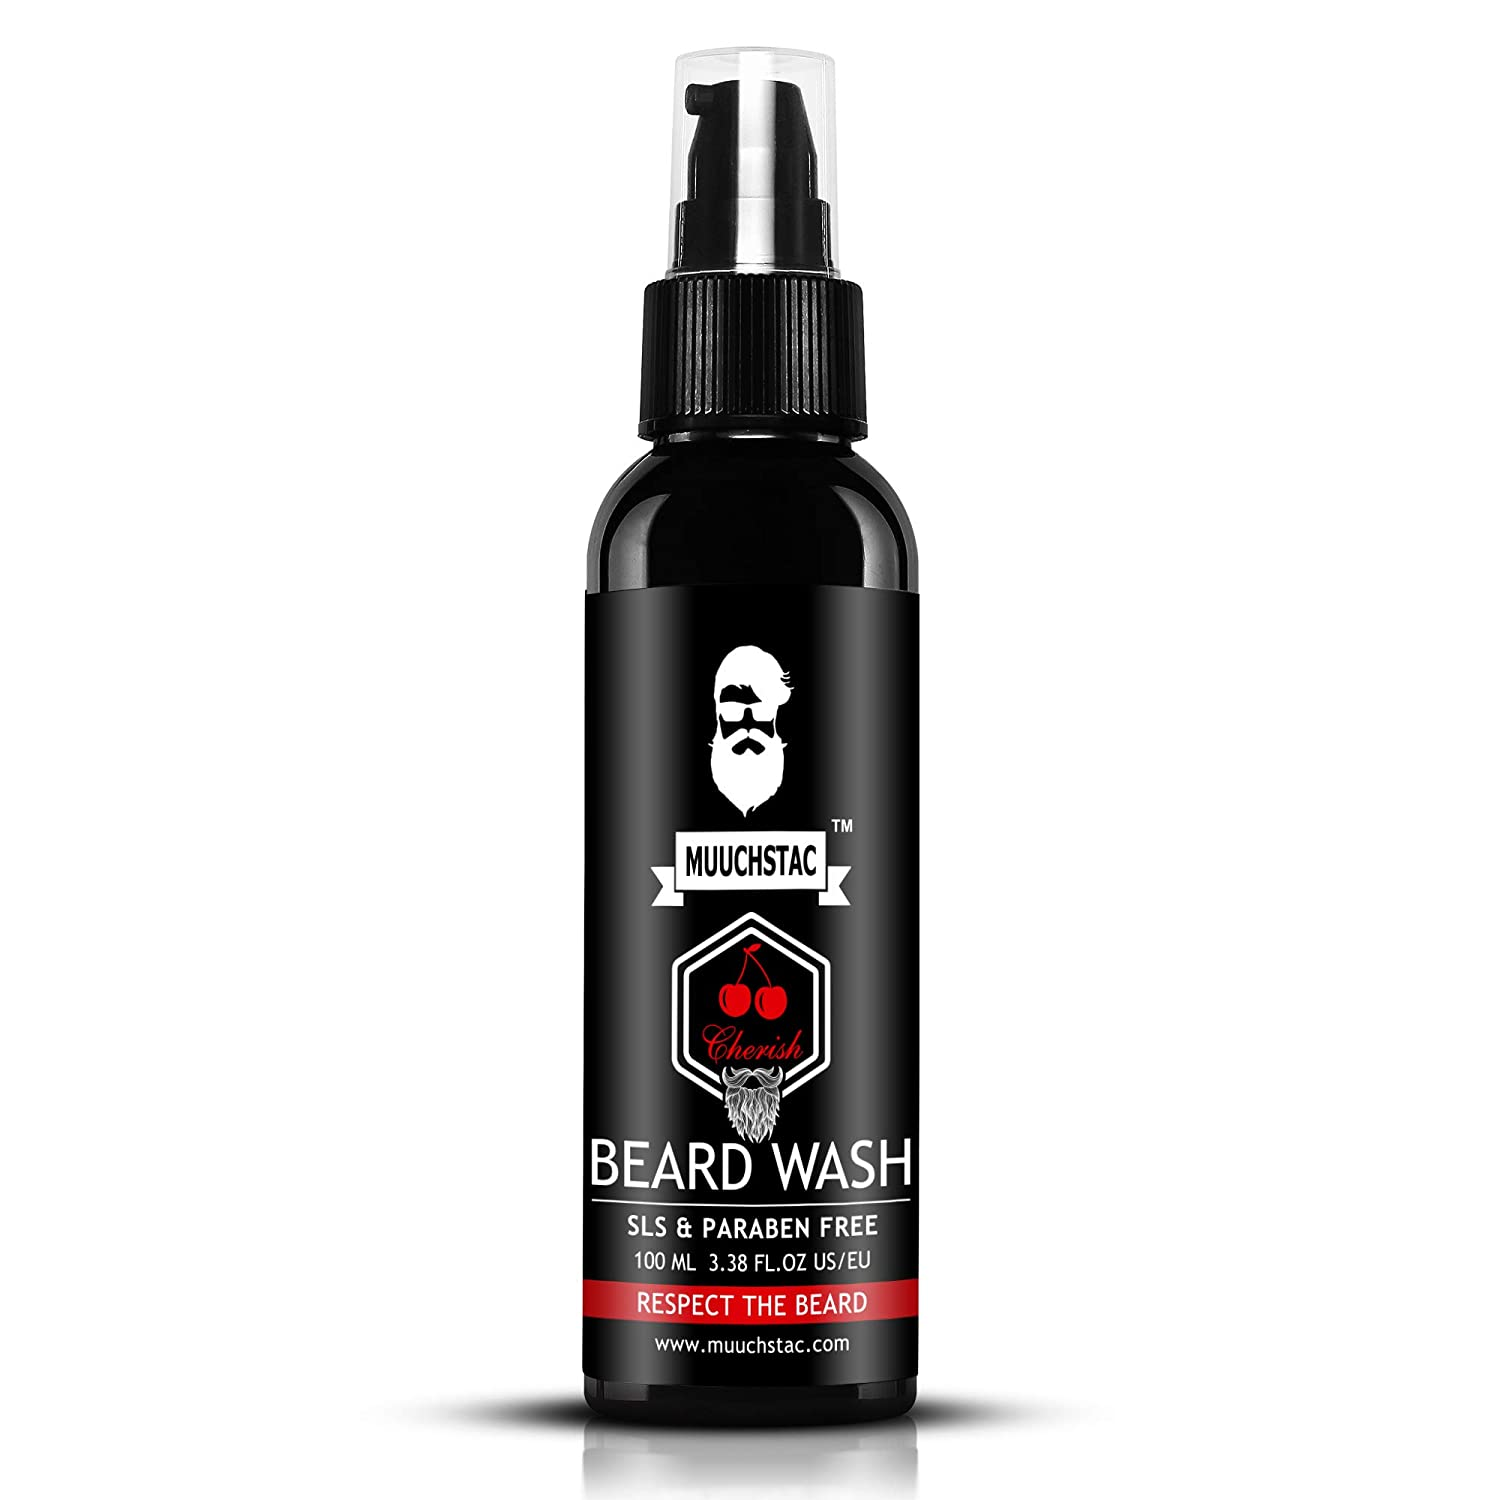 Muuchstac Beard Growth Oil, Cherish Beard Wash and Ocean Face Wash (260ml) - Pack of 3